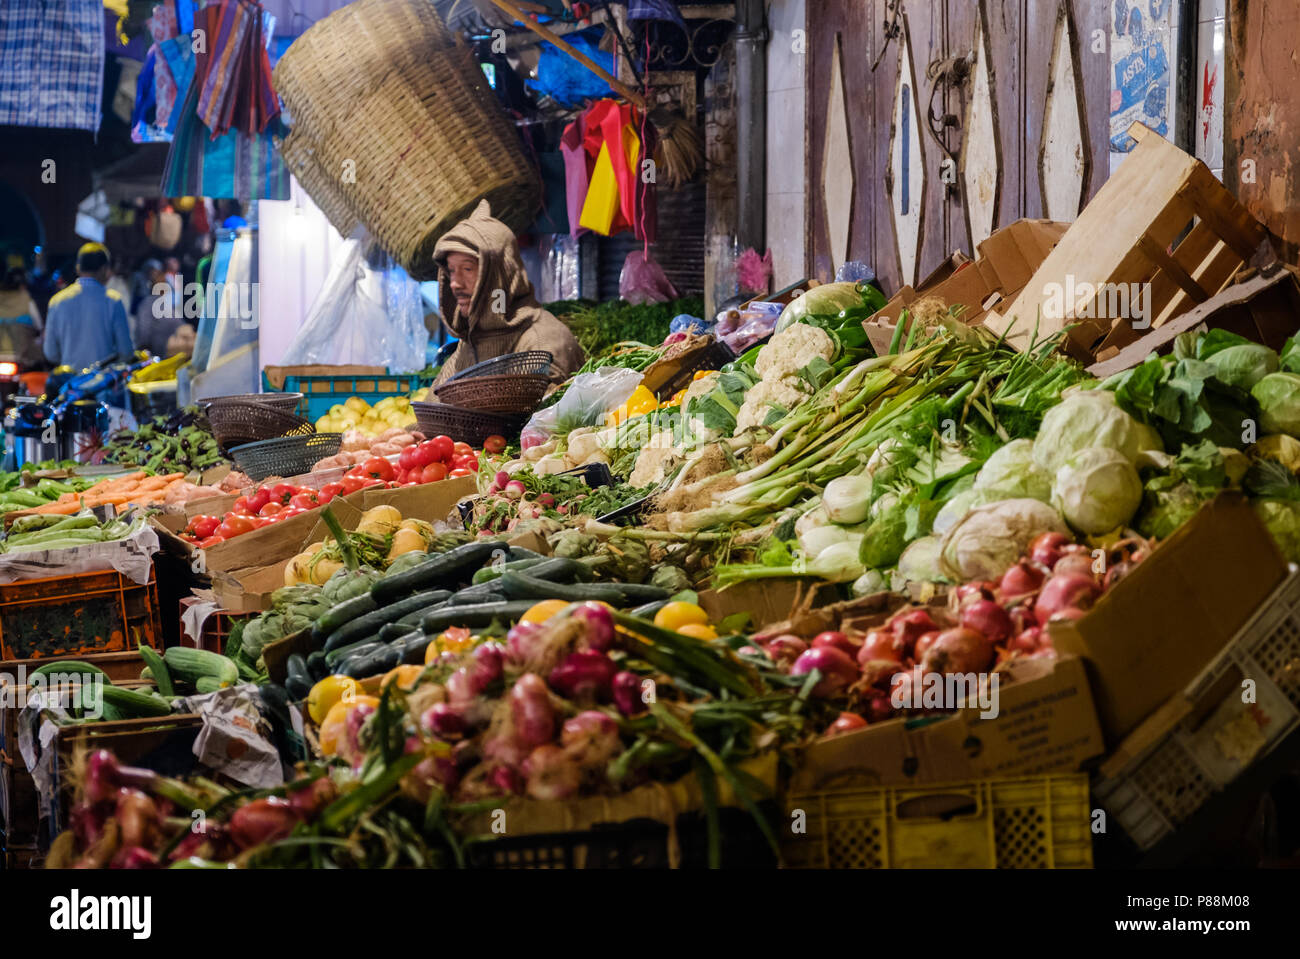 MARRAKESH, MOROCCO - CIRCA APRIL 2017: Vegetable stand shop at the Rue Bab Doukkala in Marrakesh. This is a local area close to the Medina. - Stock Image